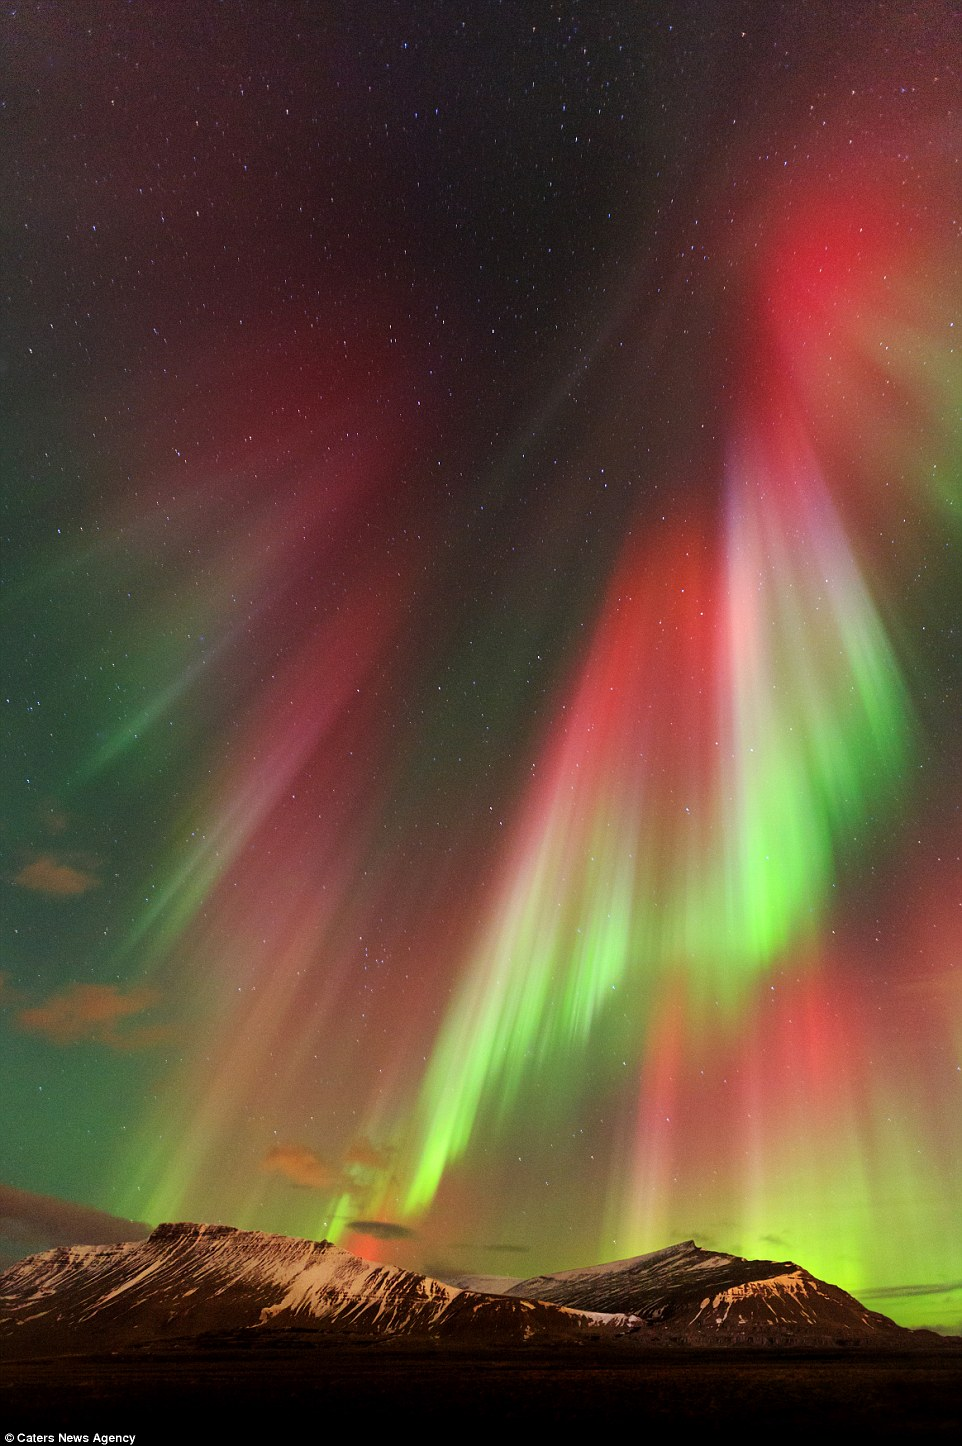 Image Of Christ The Redeemer Appears In Aurora Borealis